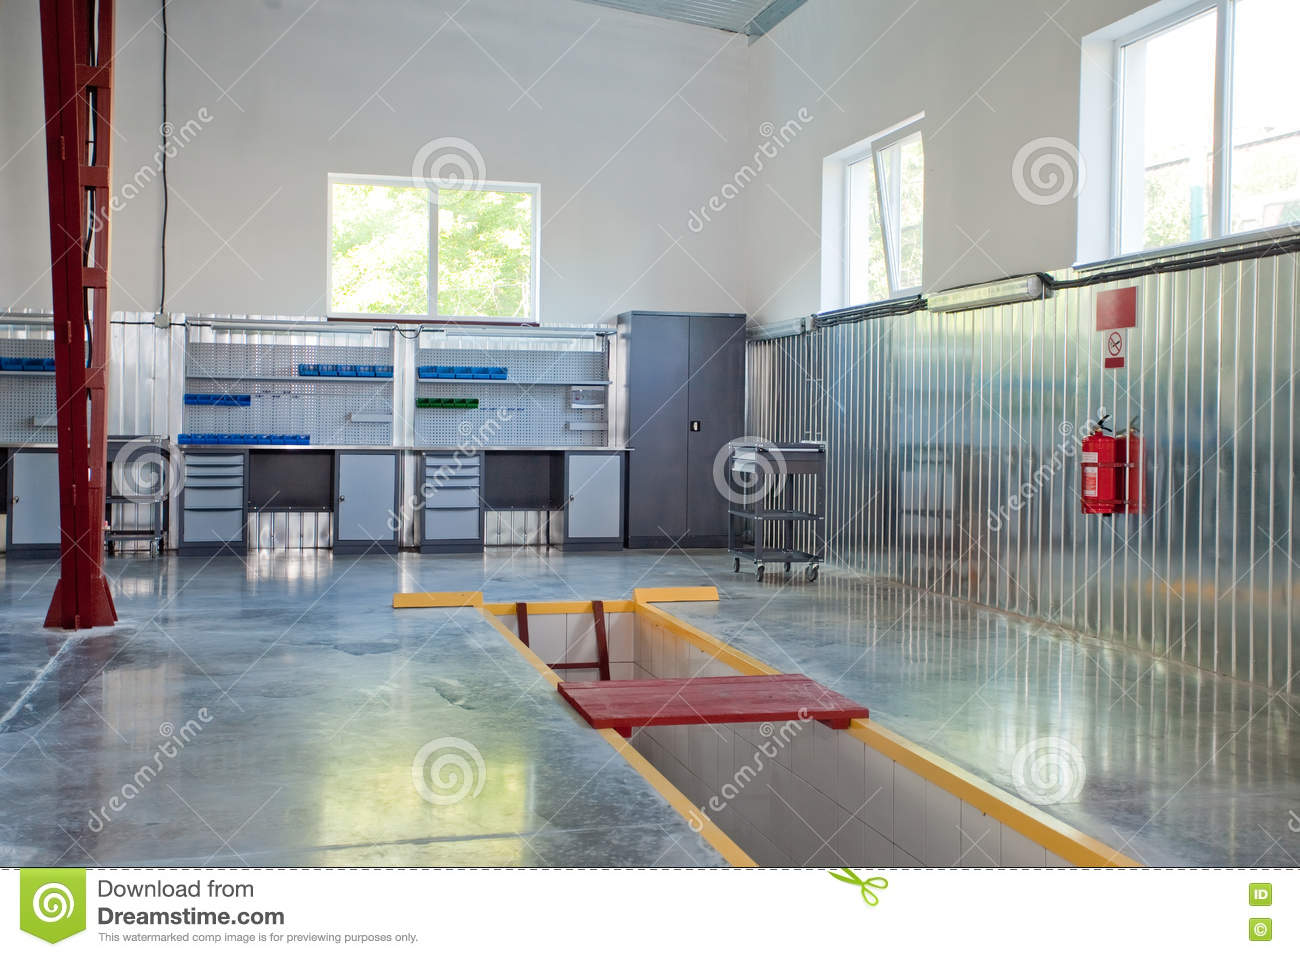 Auso service garage inspection pit stock photo image of for Garage diagnostic auto